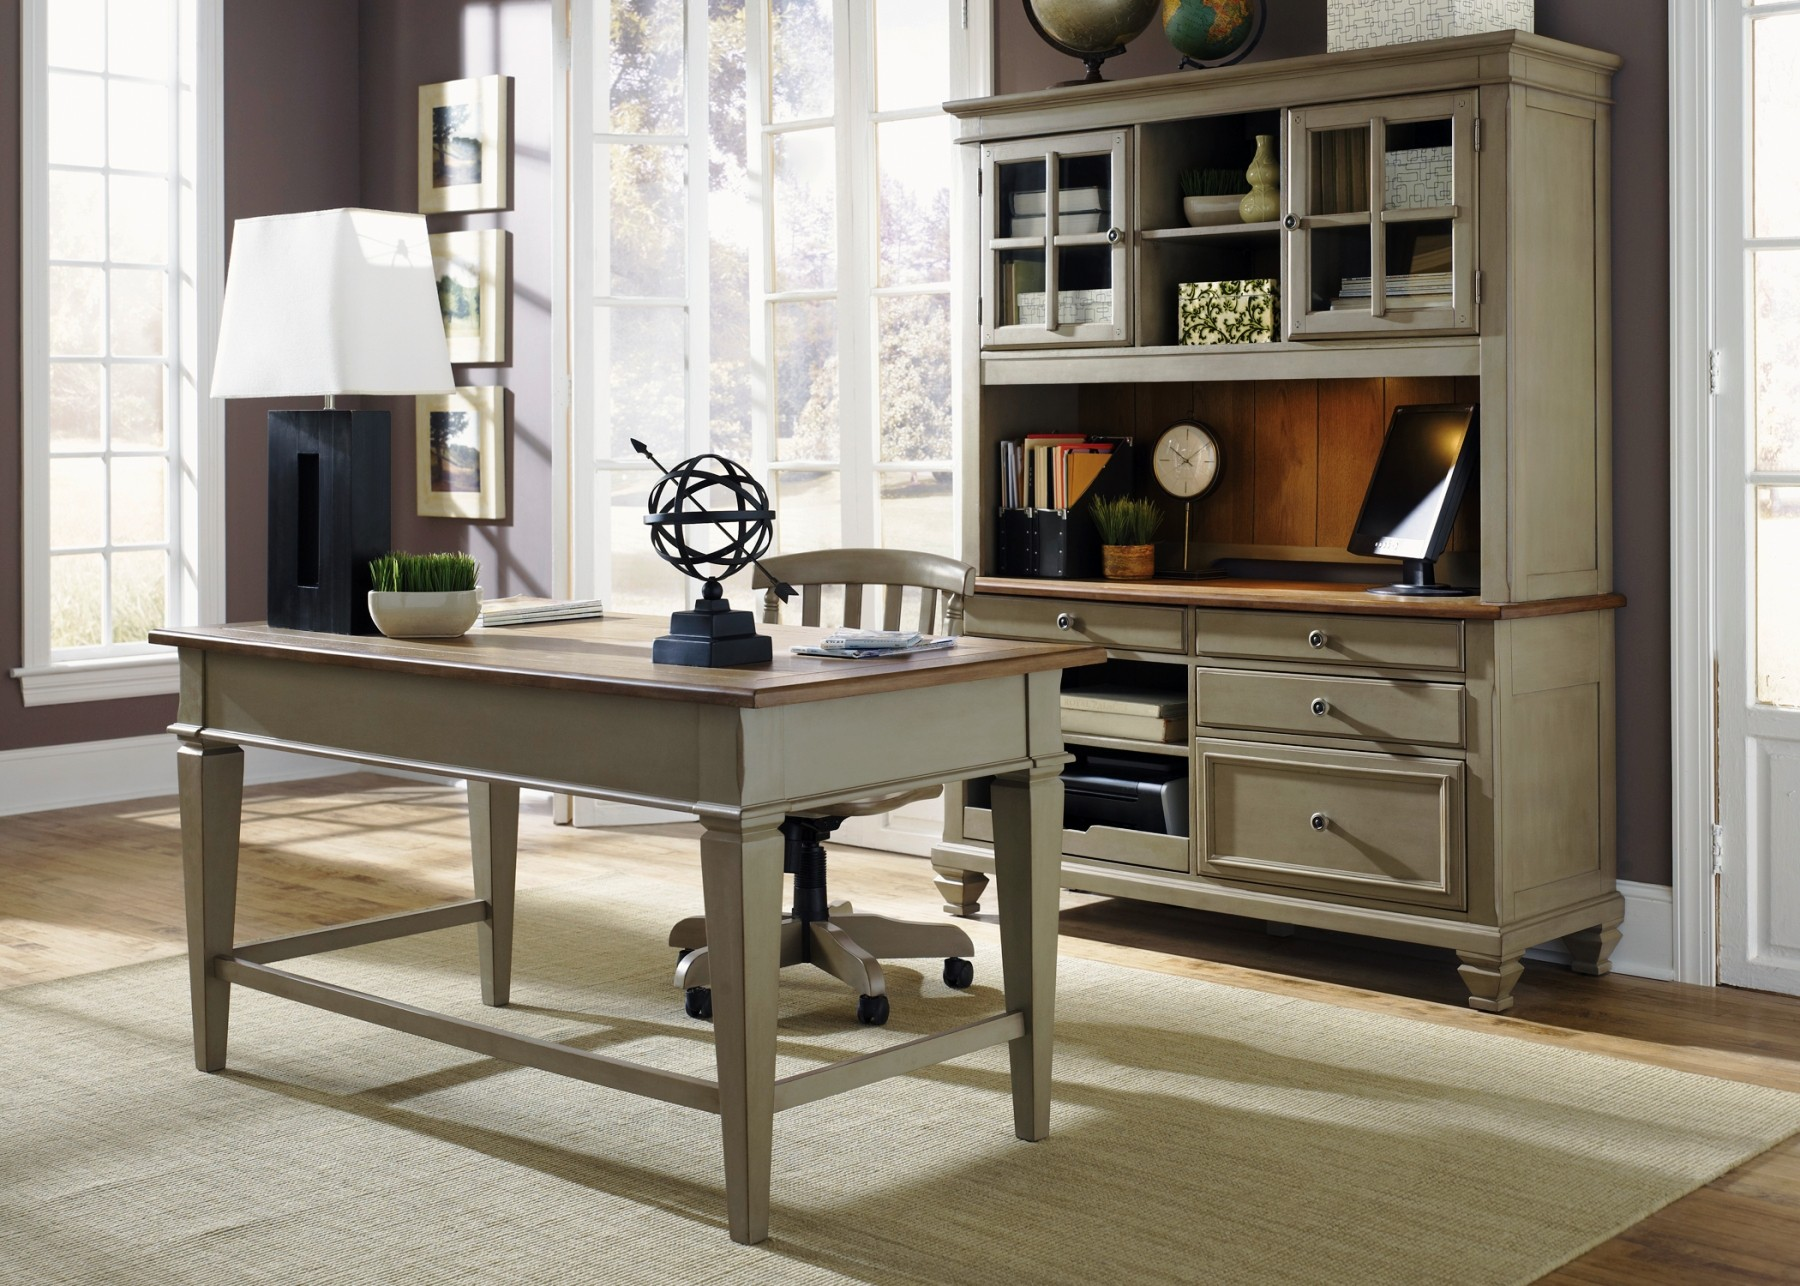 executive iteminformation visitorssidesilo office furniture hooker archivist desk home